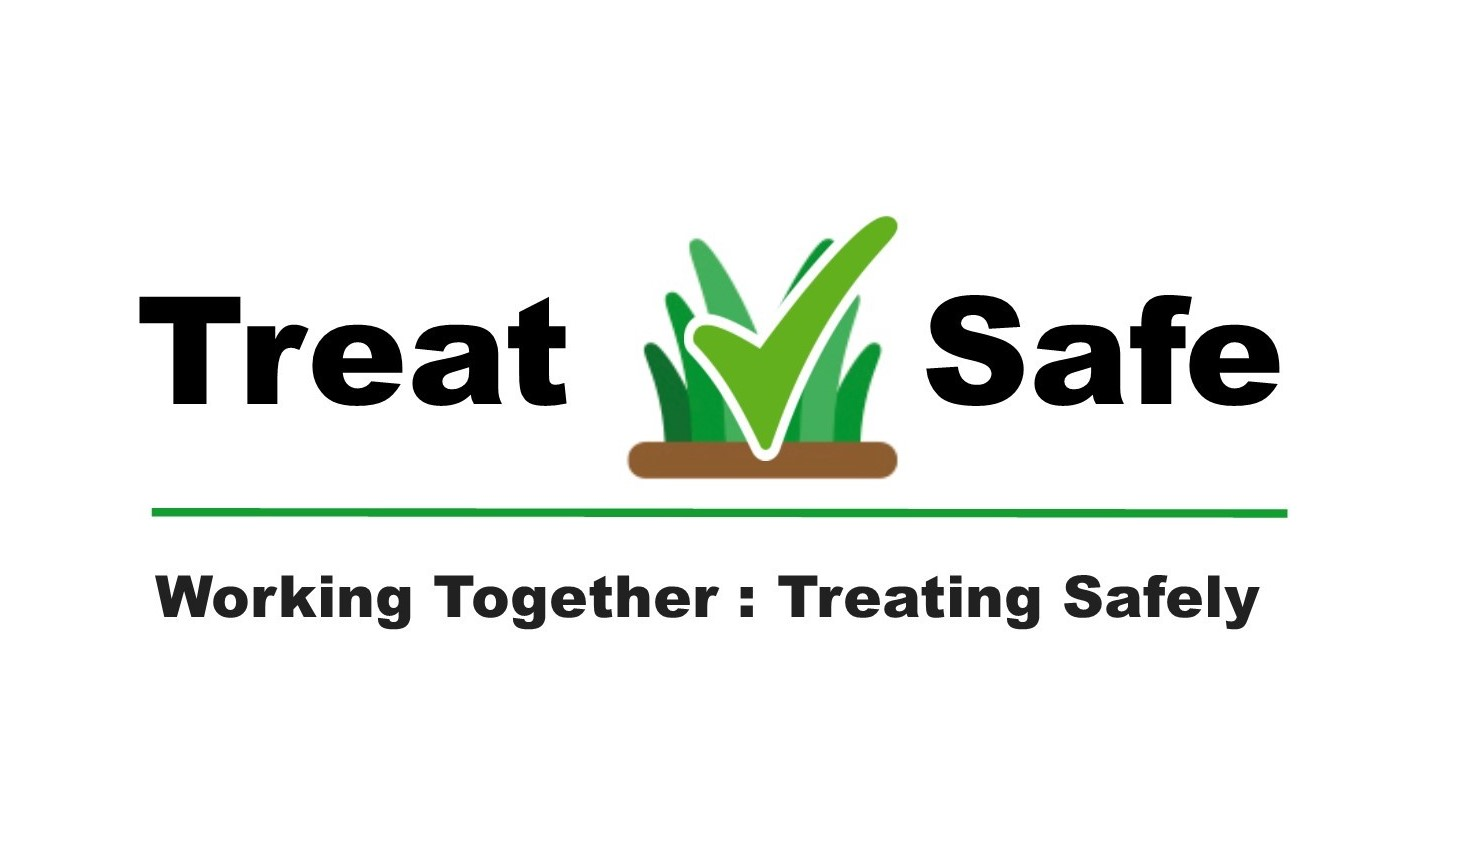 TreatSafe